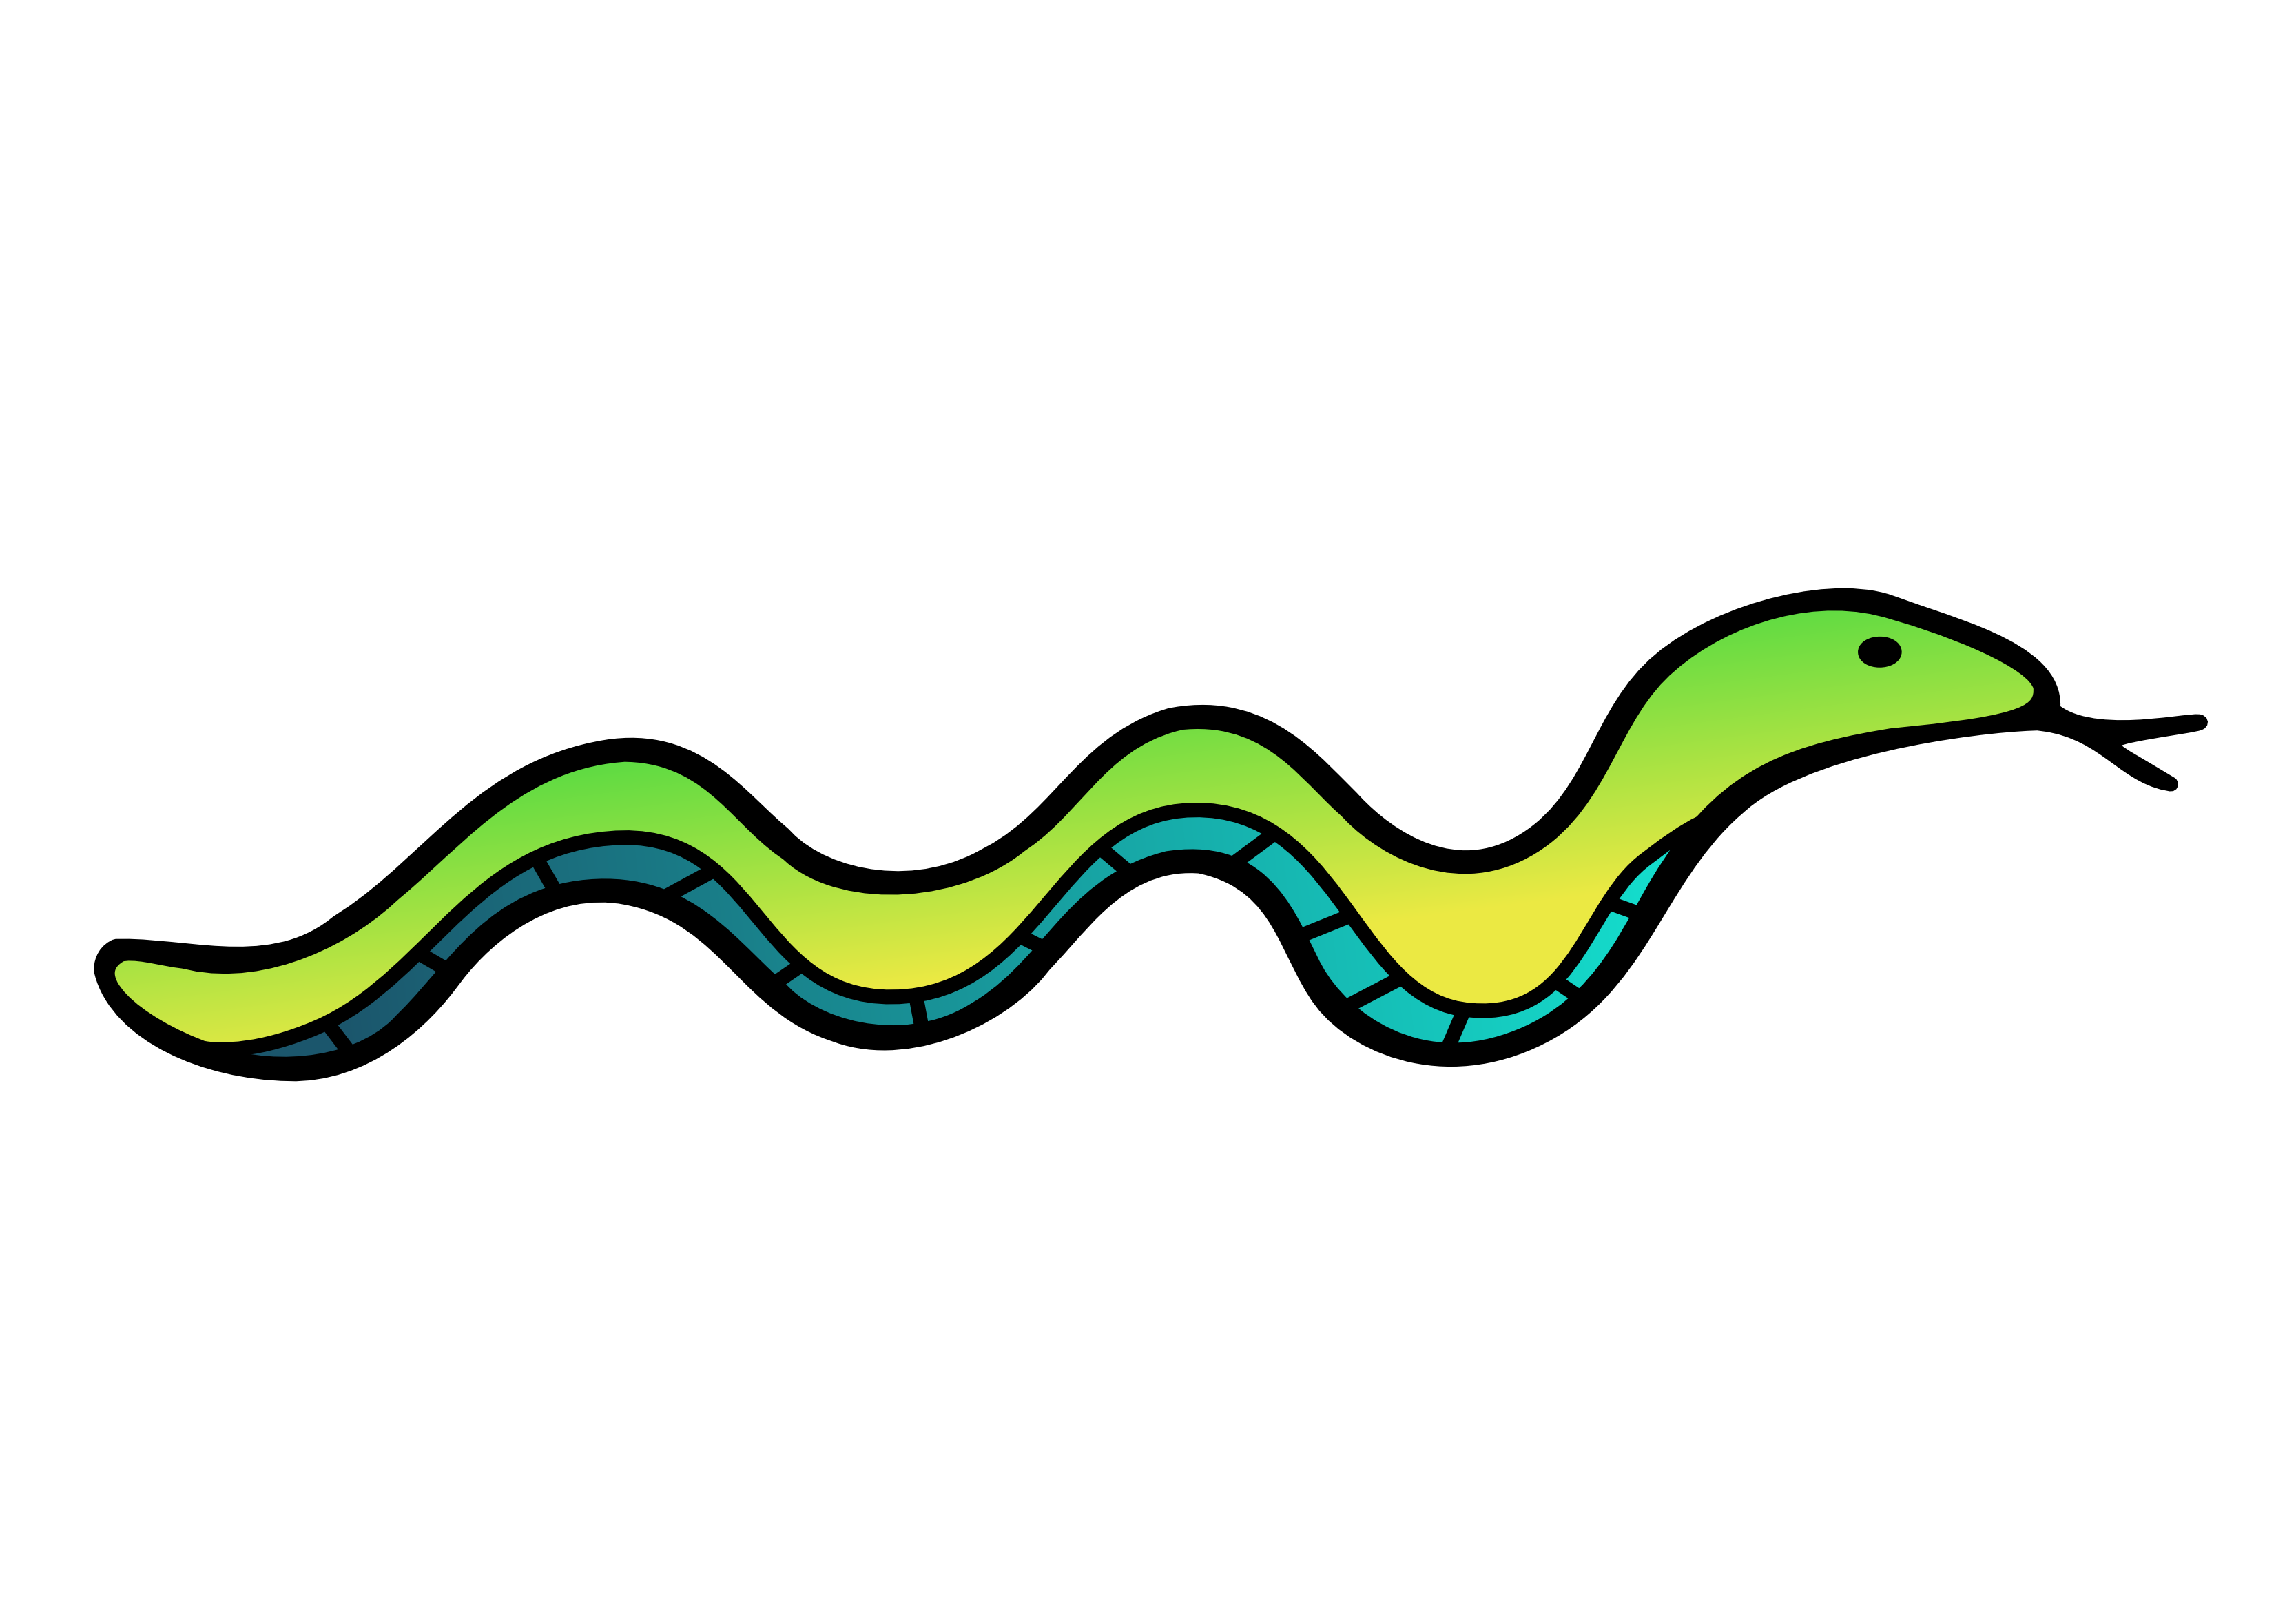 Worm clipart long straight #14